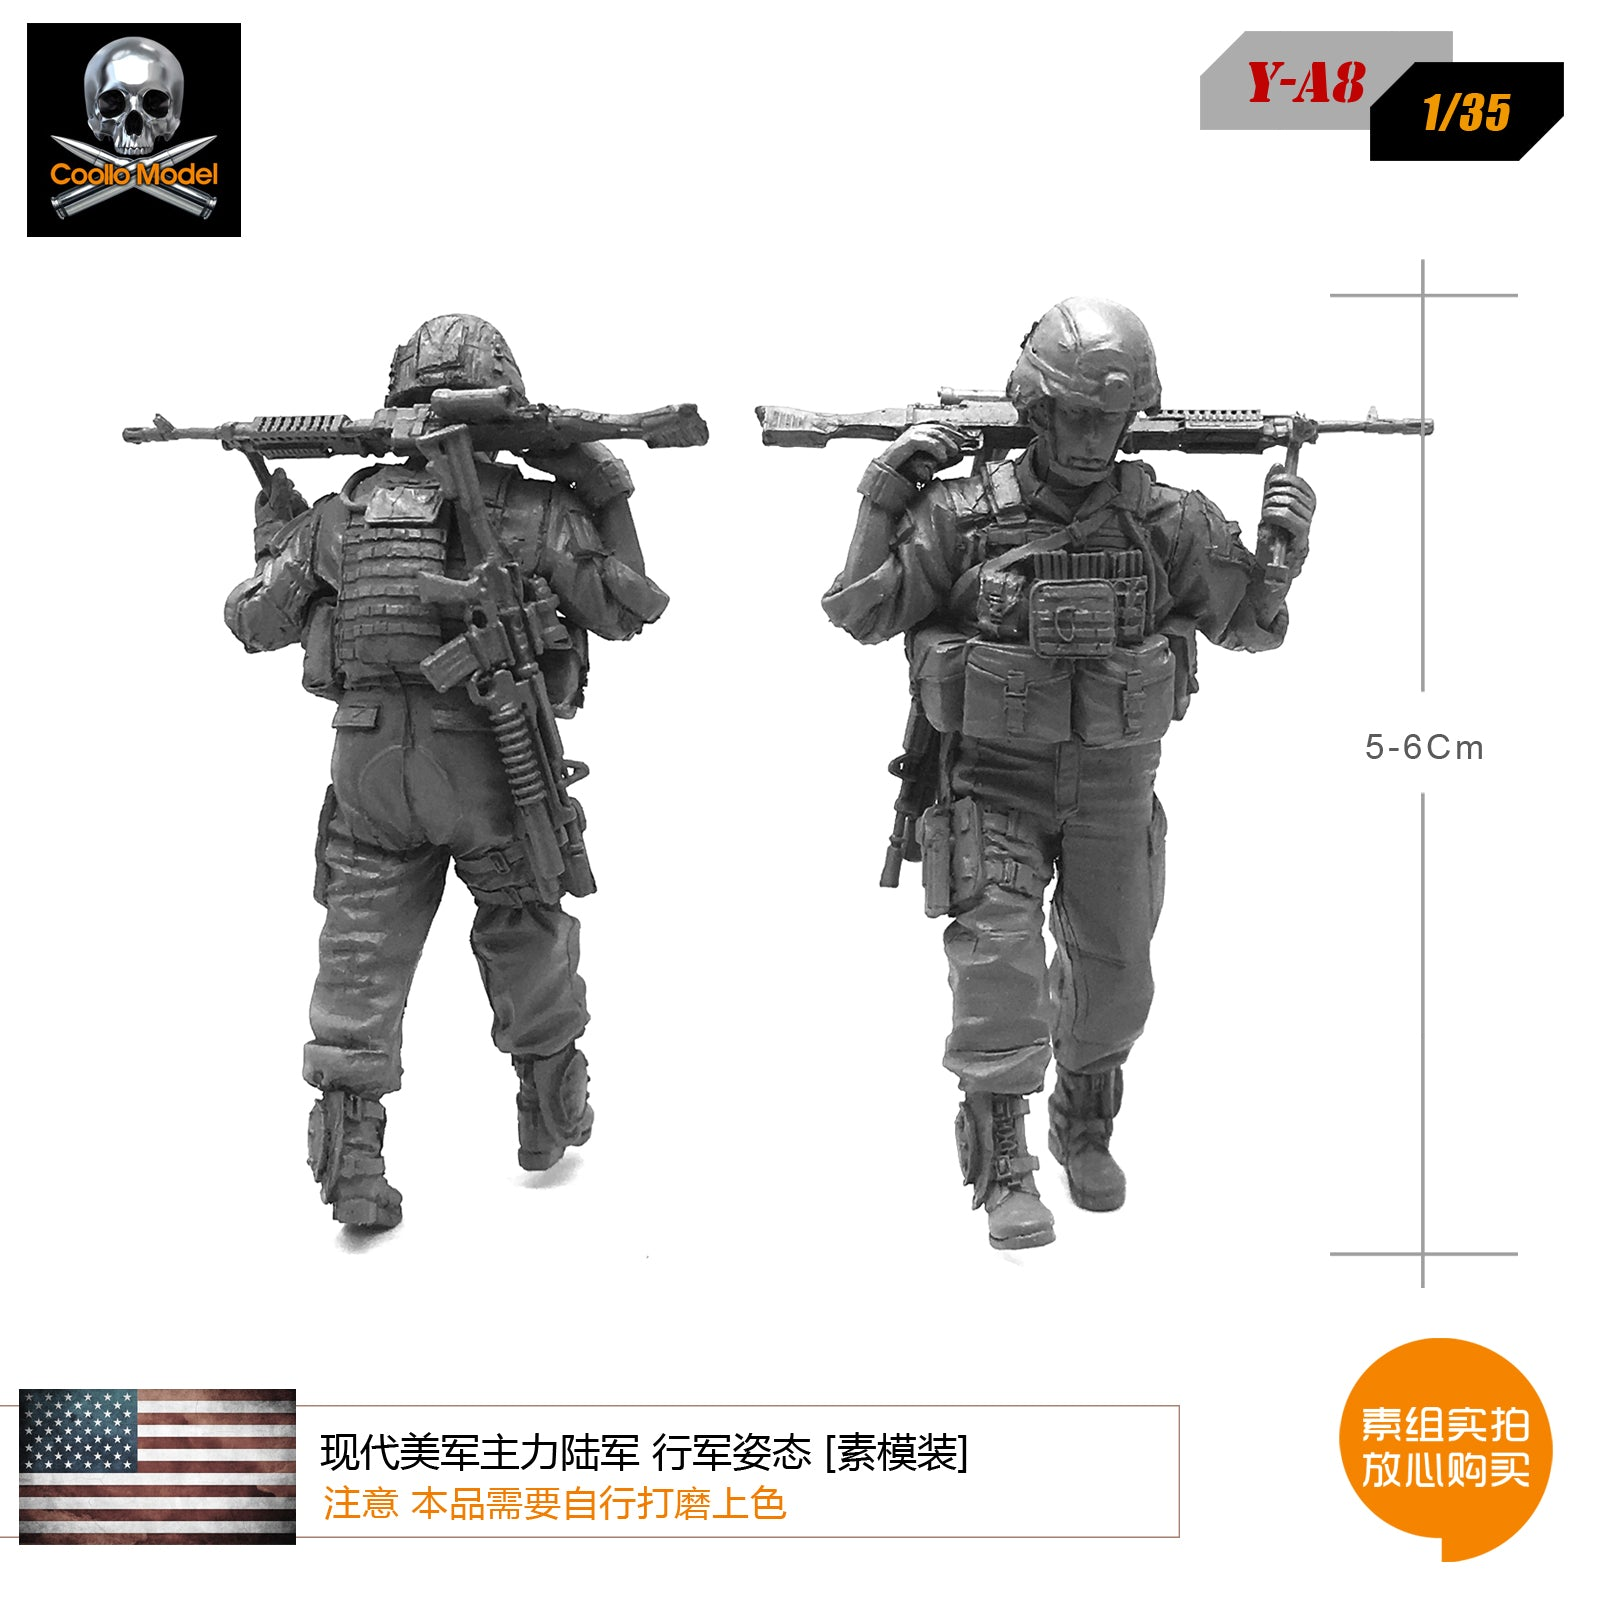 1/35 modern US military main army march posture resin soldiers model element Y-A8